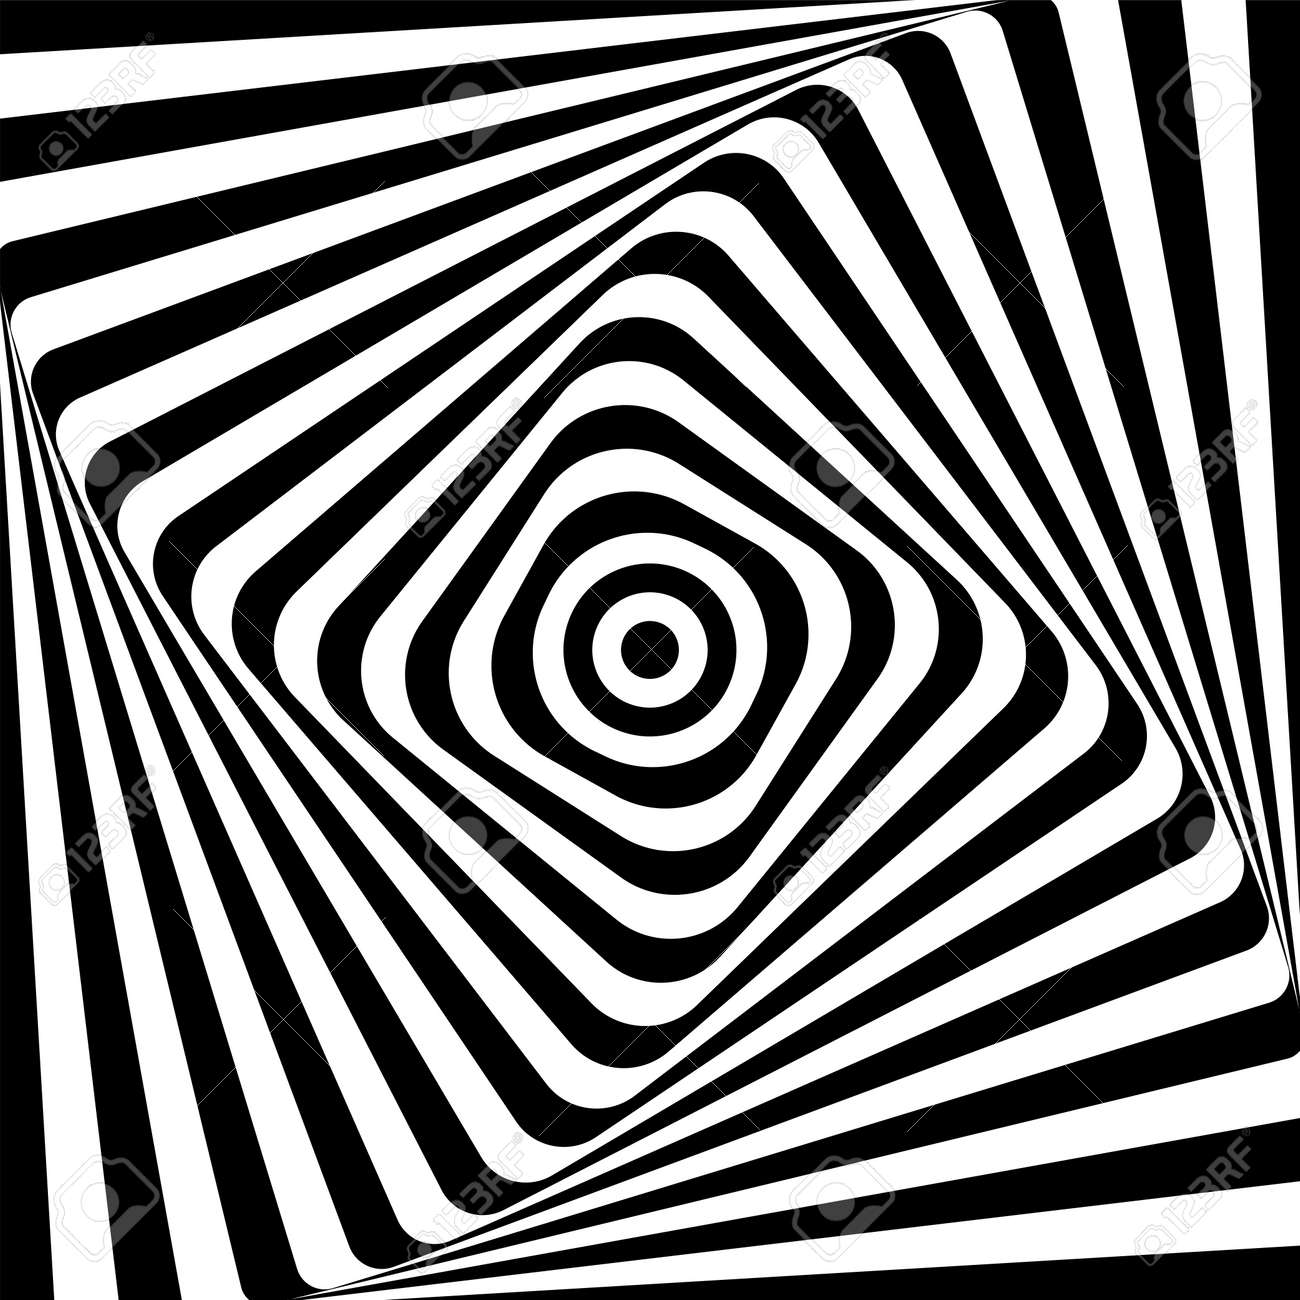 Abstract illusion of 3D whirl movement. Op art vector design. - 159354029